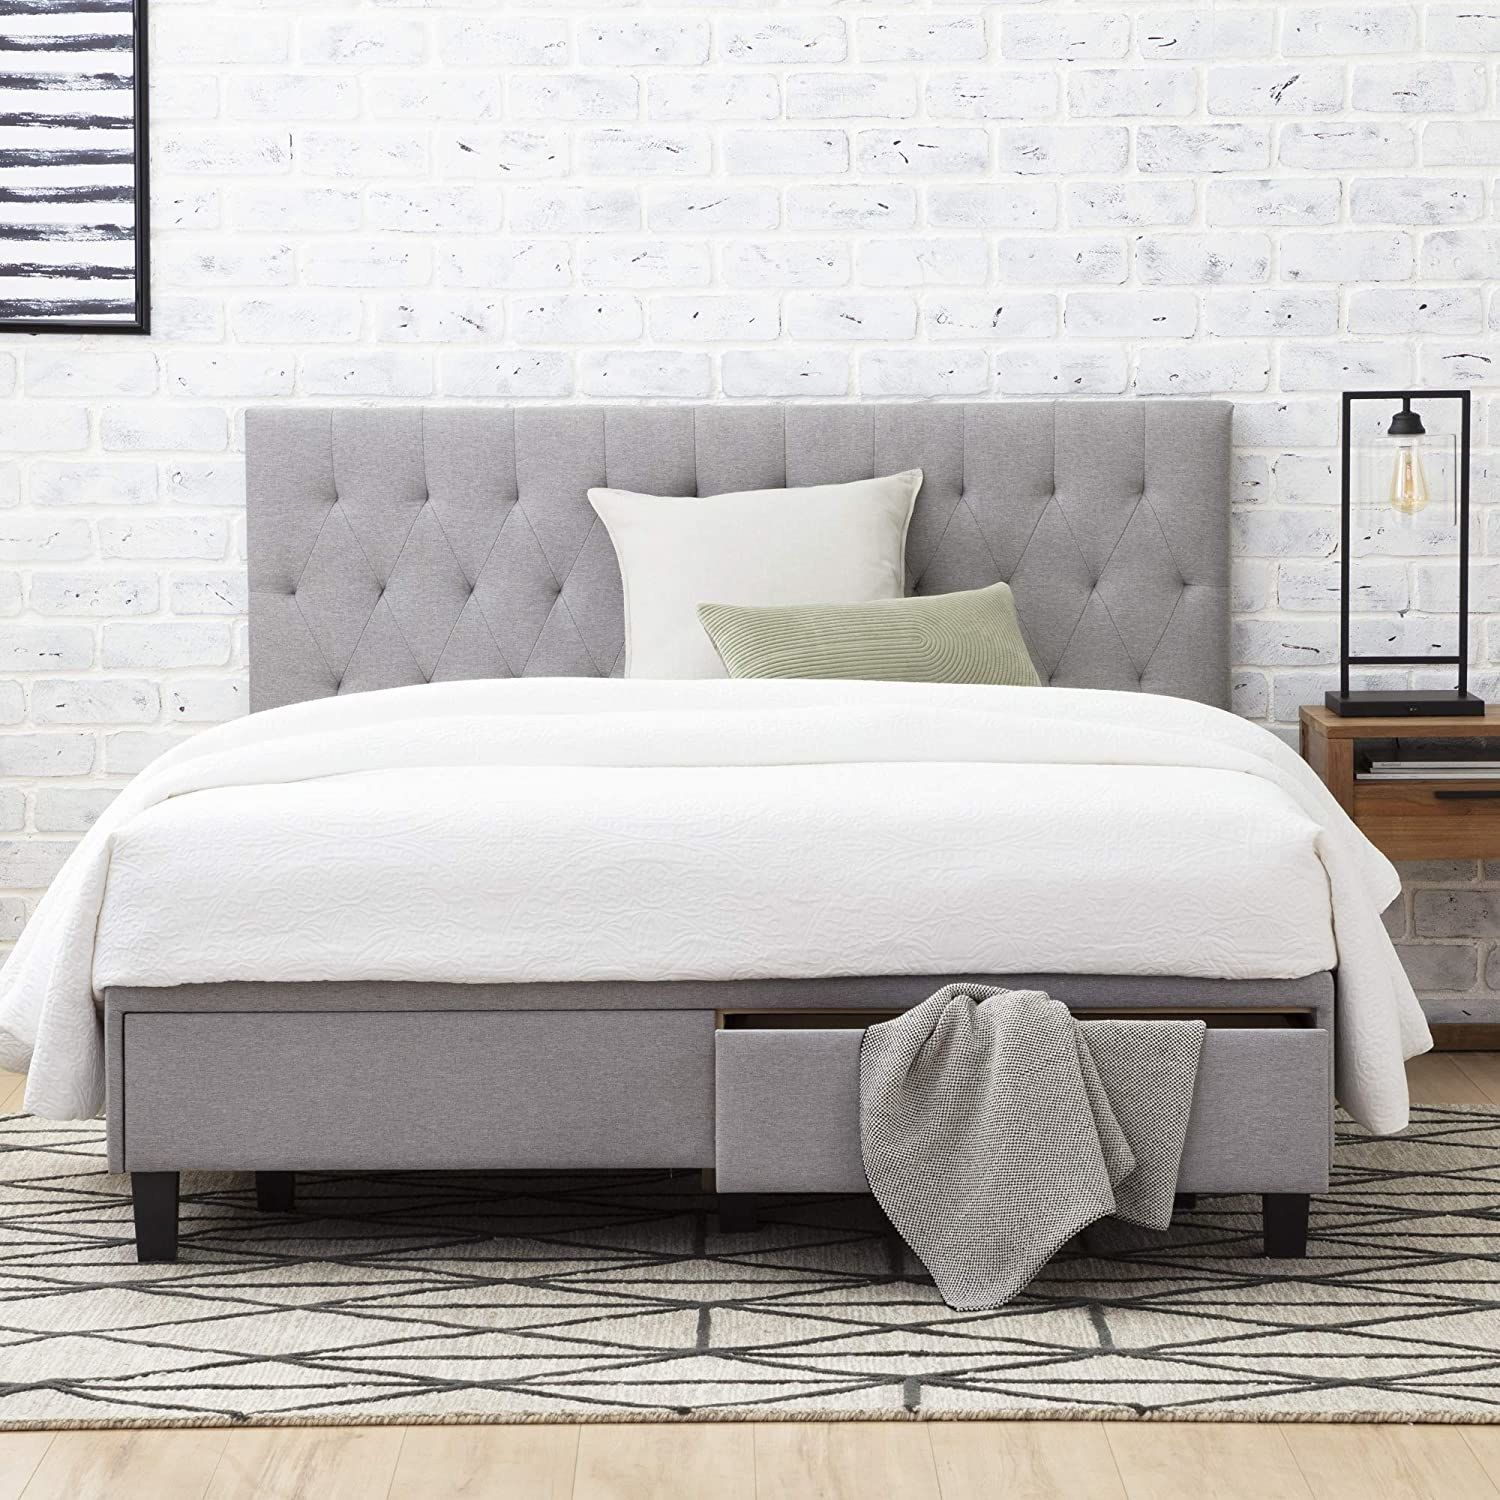 And finally, a tufted storage bed that's gonna give you